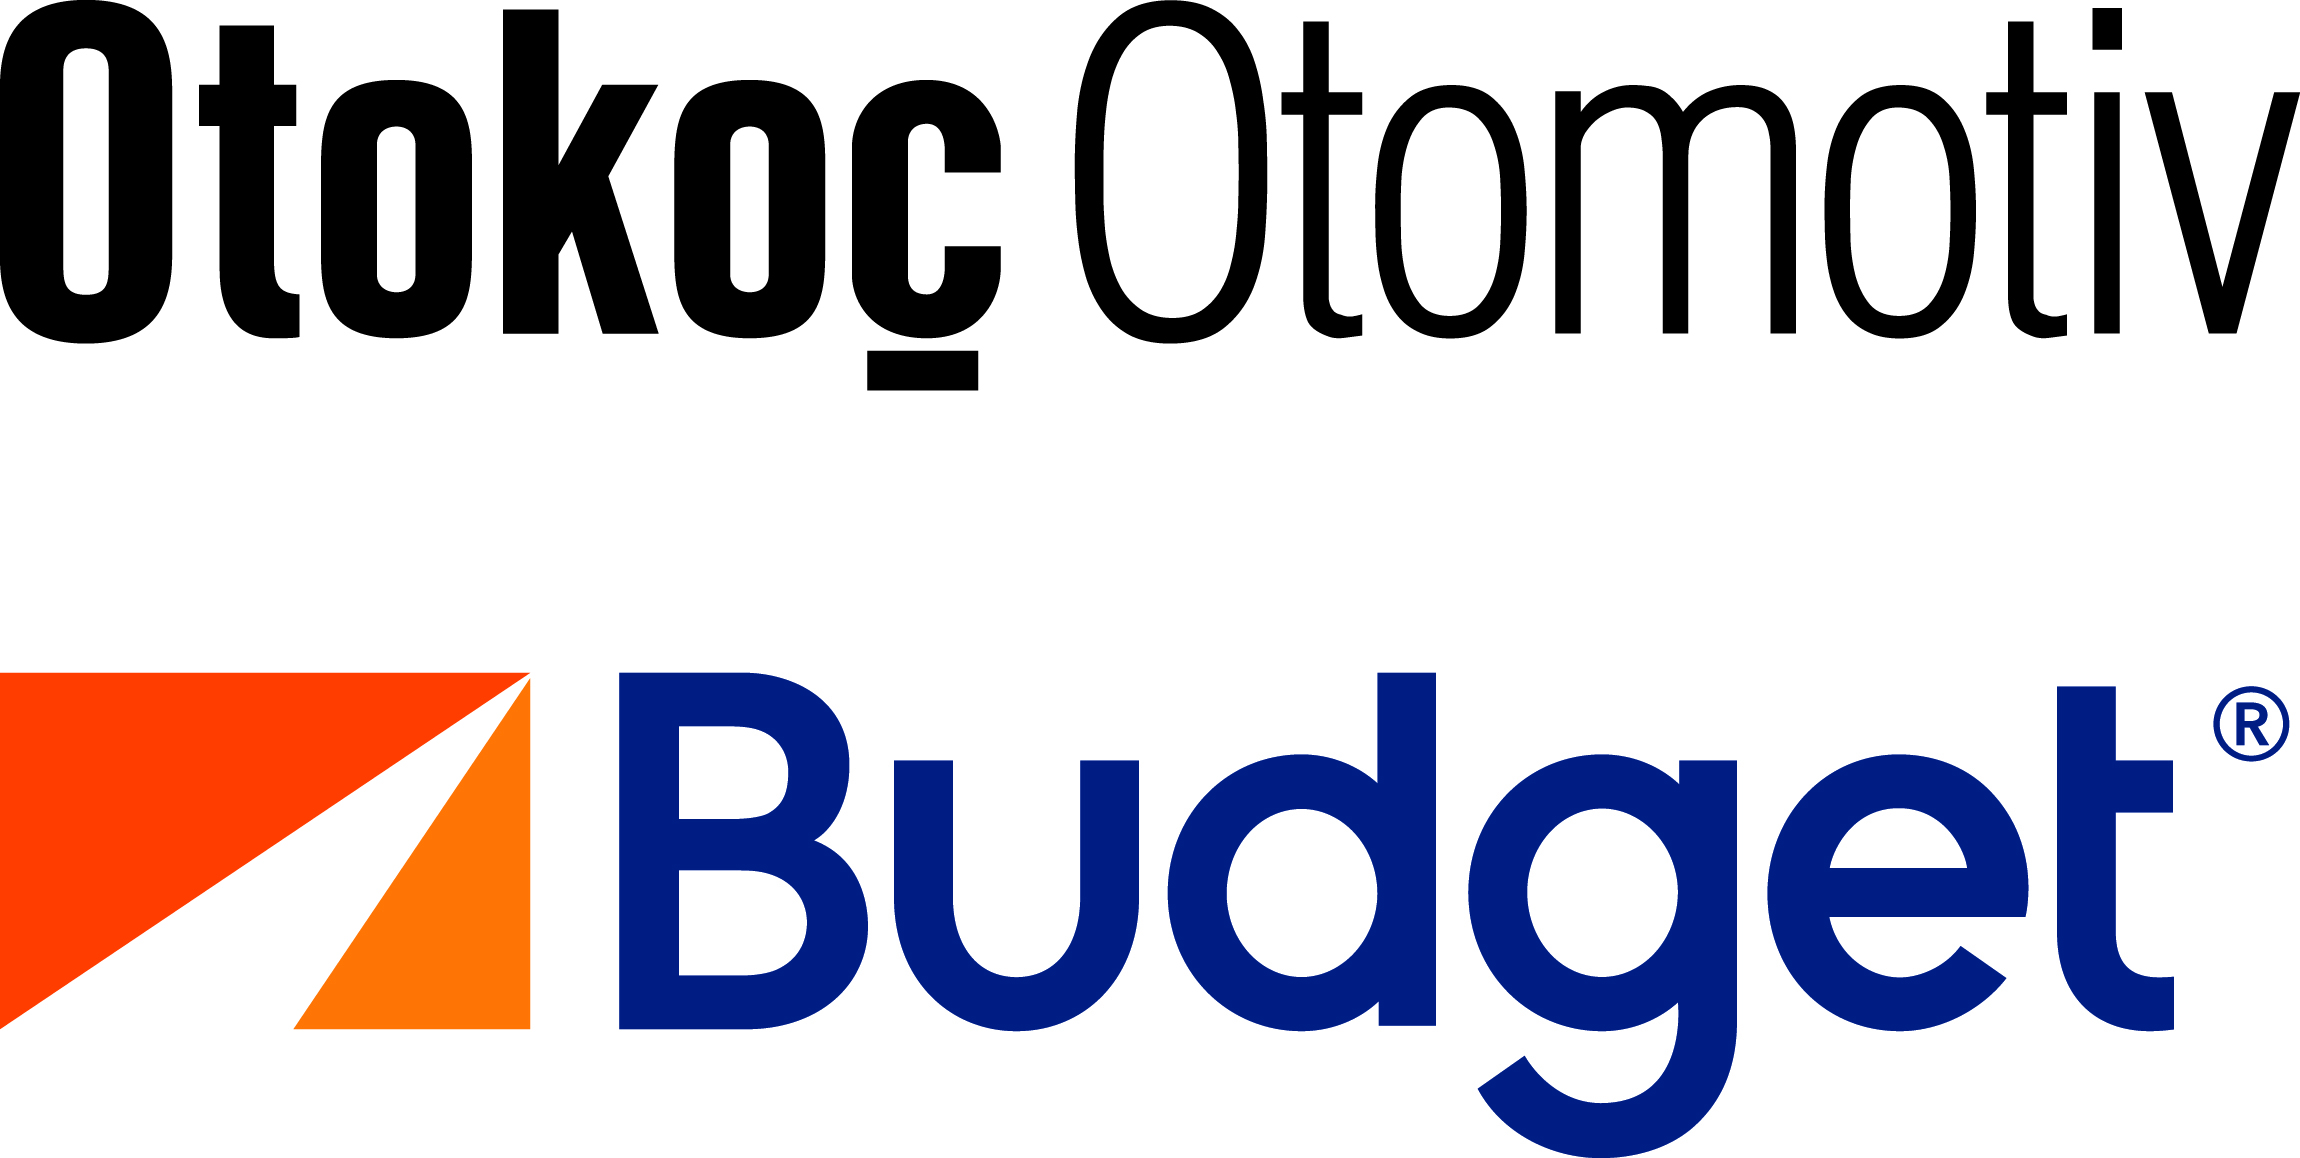 www.budget.com - Please click on the image to discover more